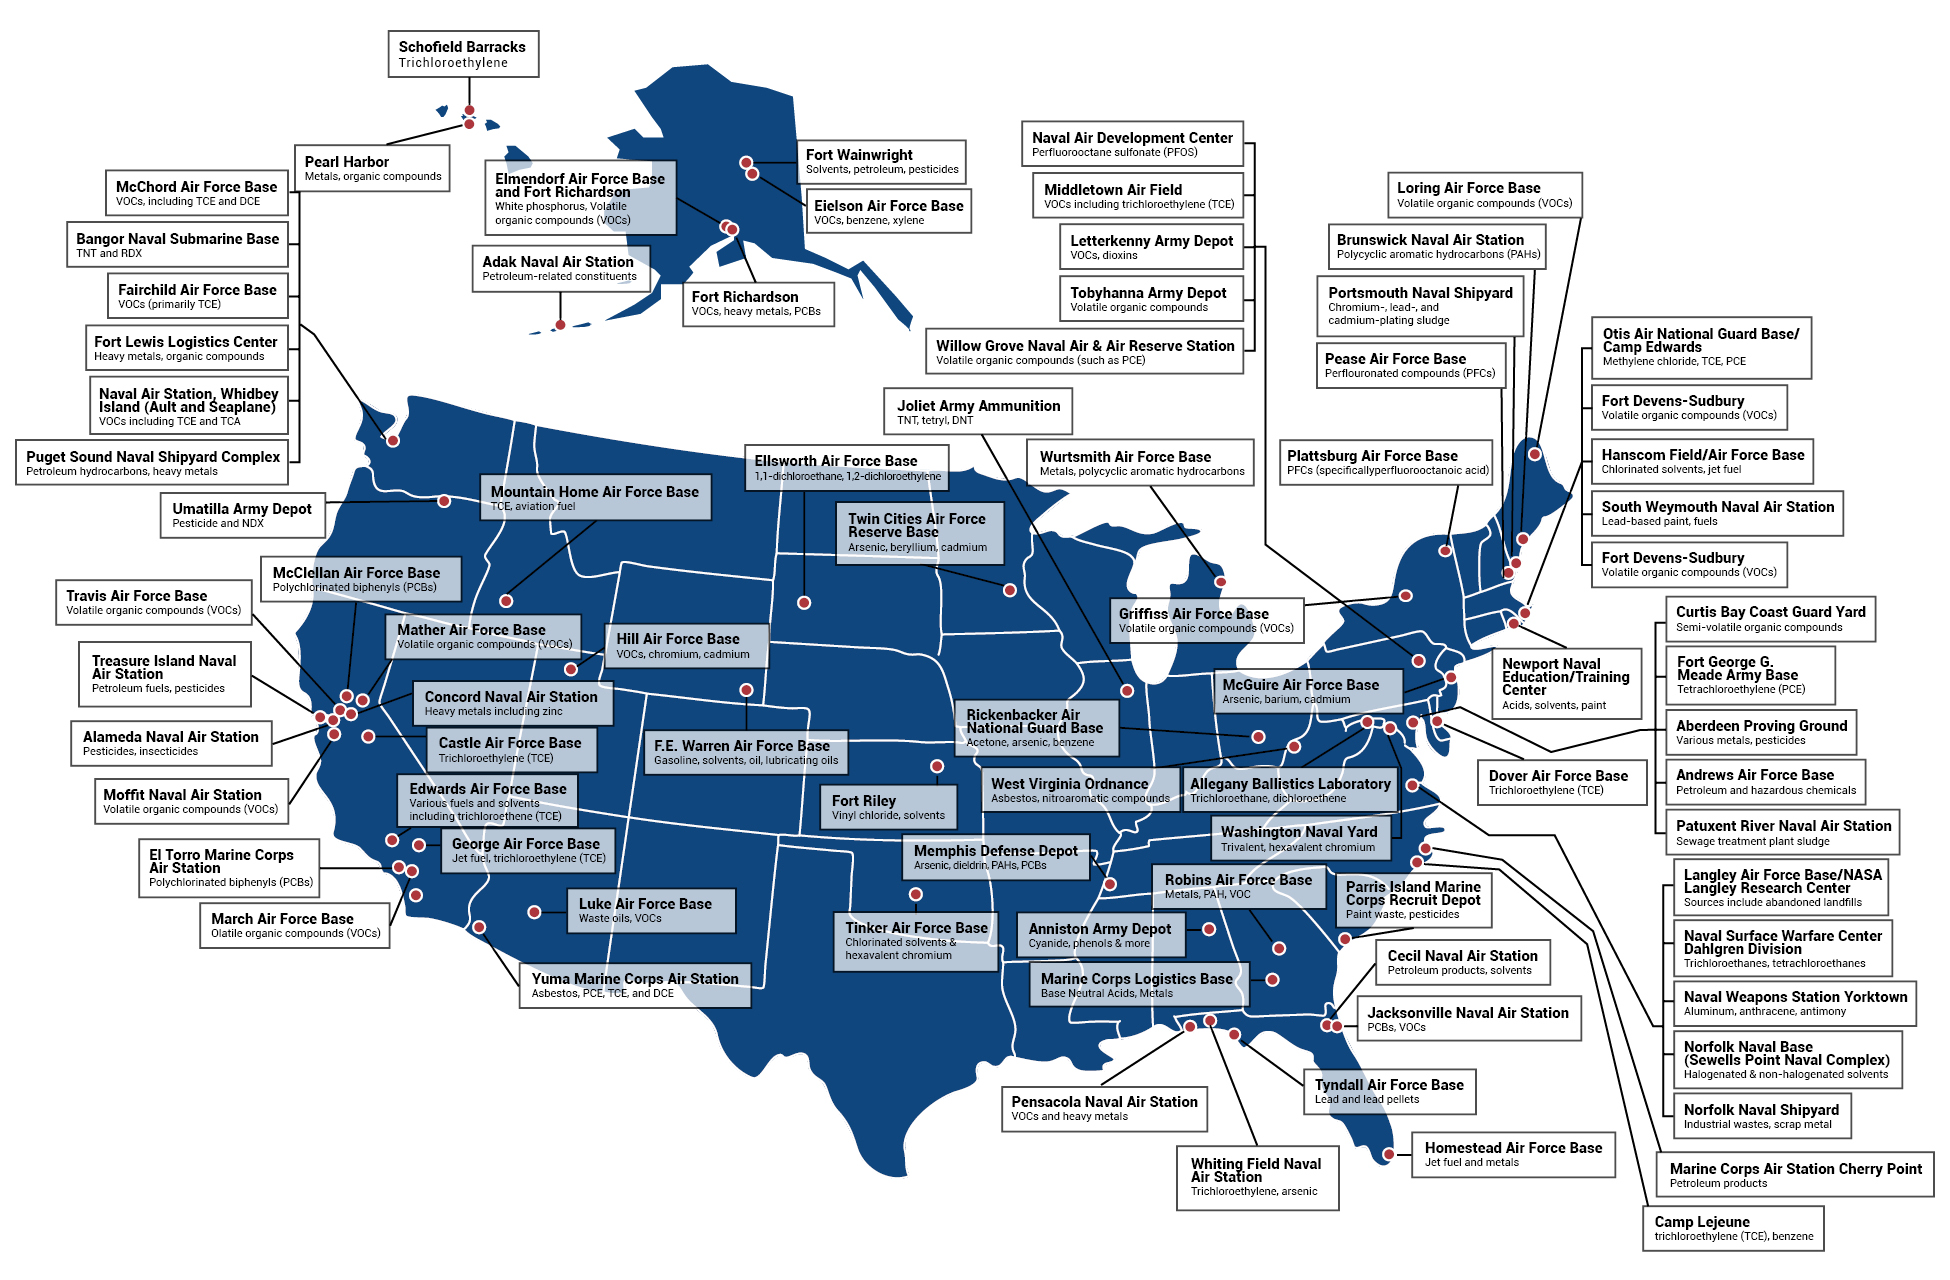 Exposures And Military Bases In The United States